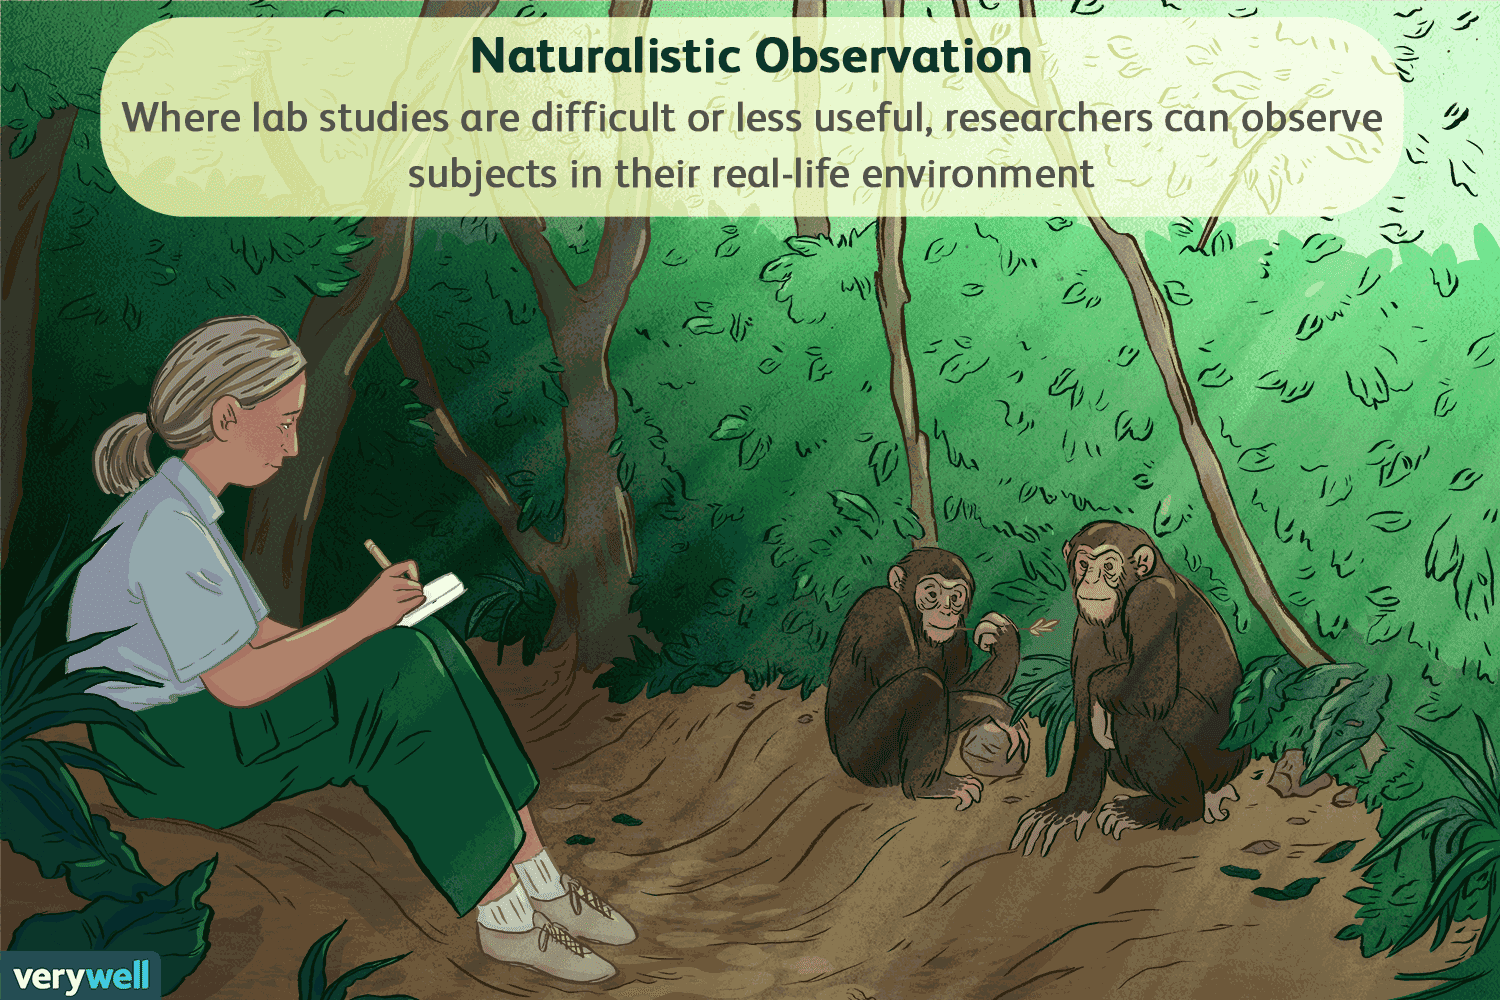 Case Studies Naturalistic Observation And Surveys Are All Examples Of